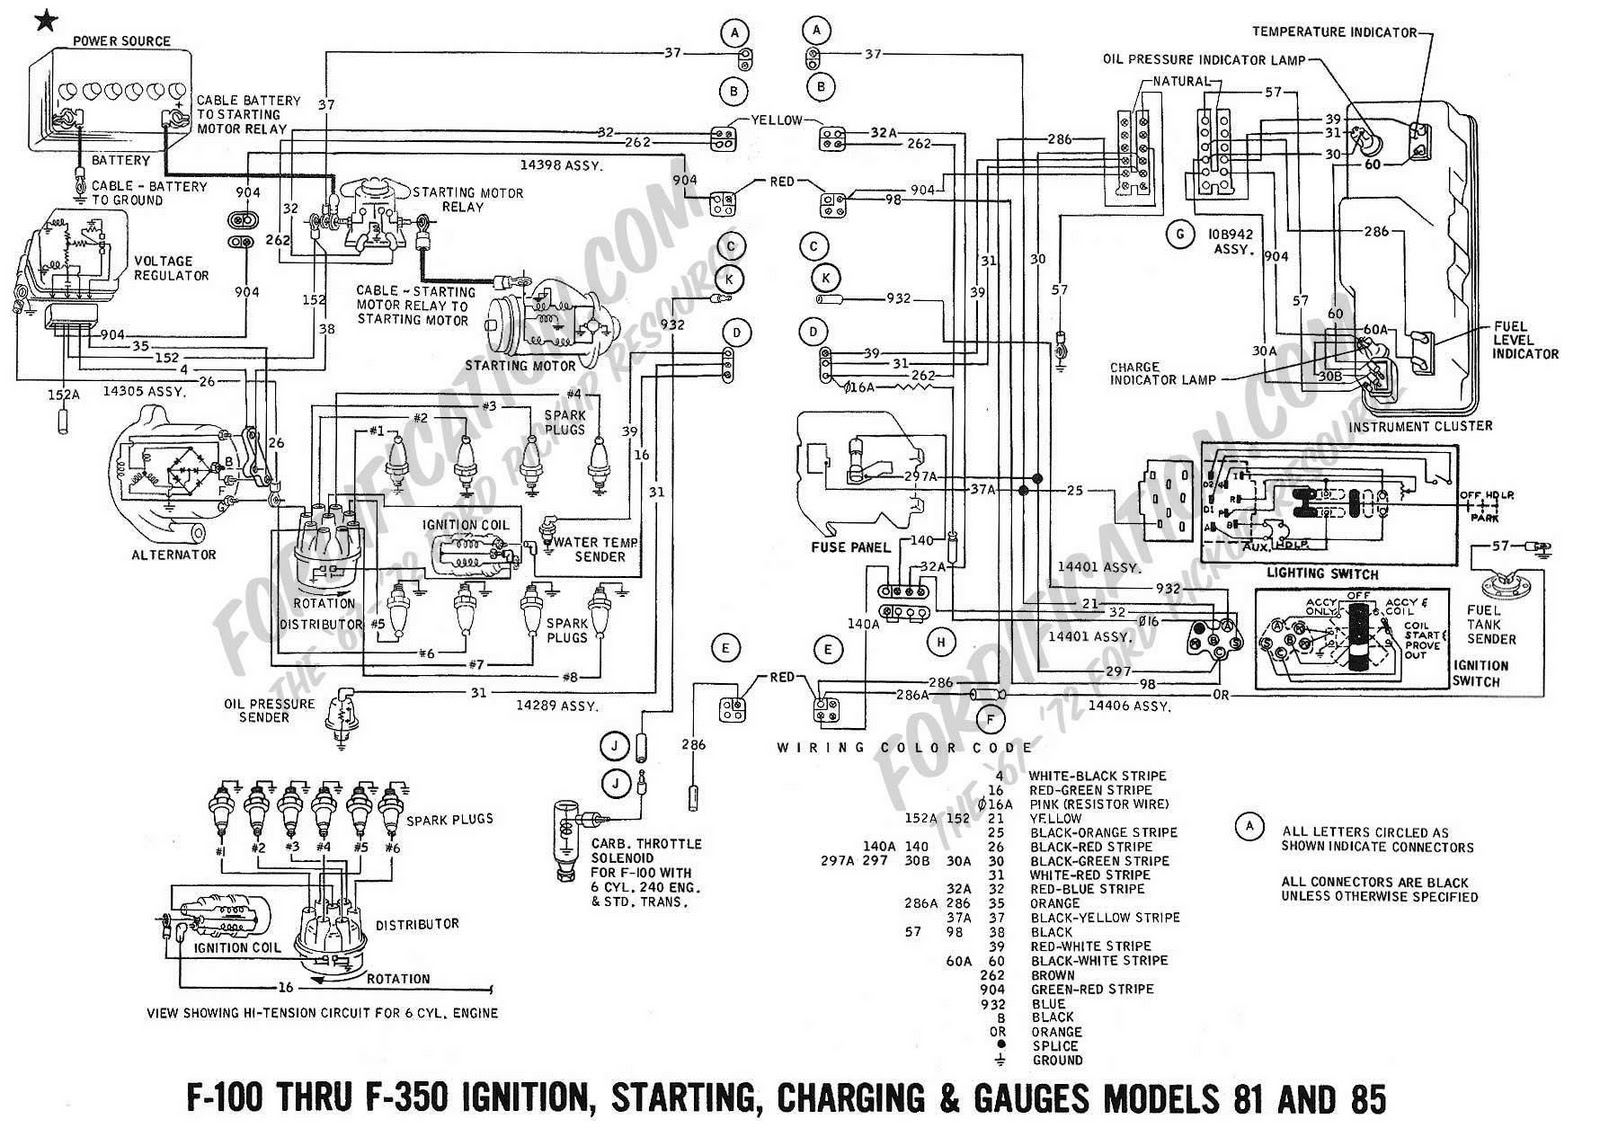 1975 Ford 302 Engine Diagram Archive Of Automotive Wiring Mustang 1977 Ltd Schematics Rh Thyl Co Uk